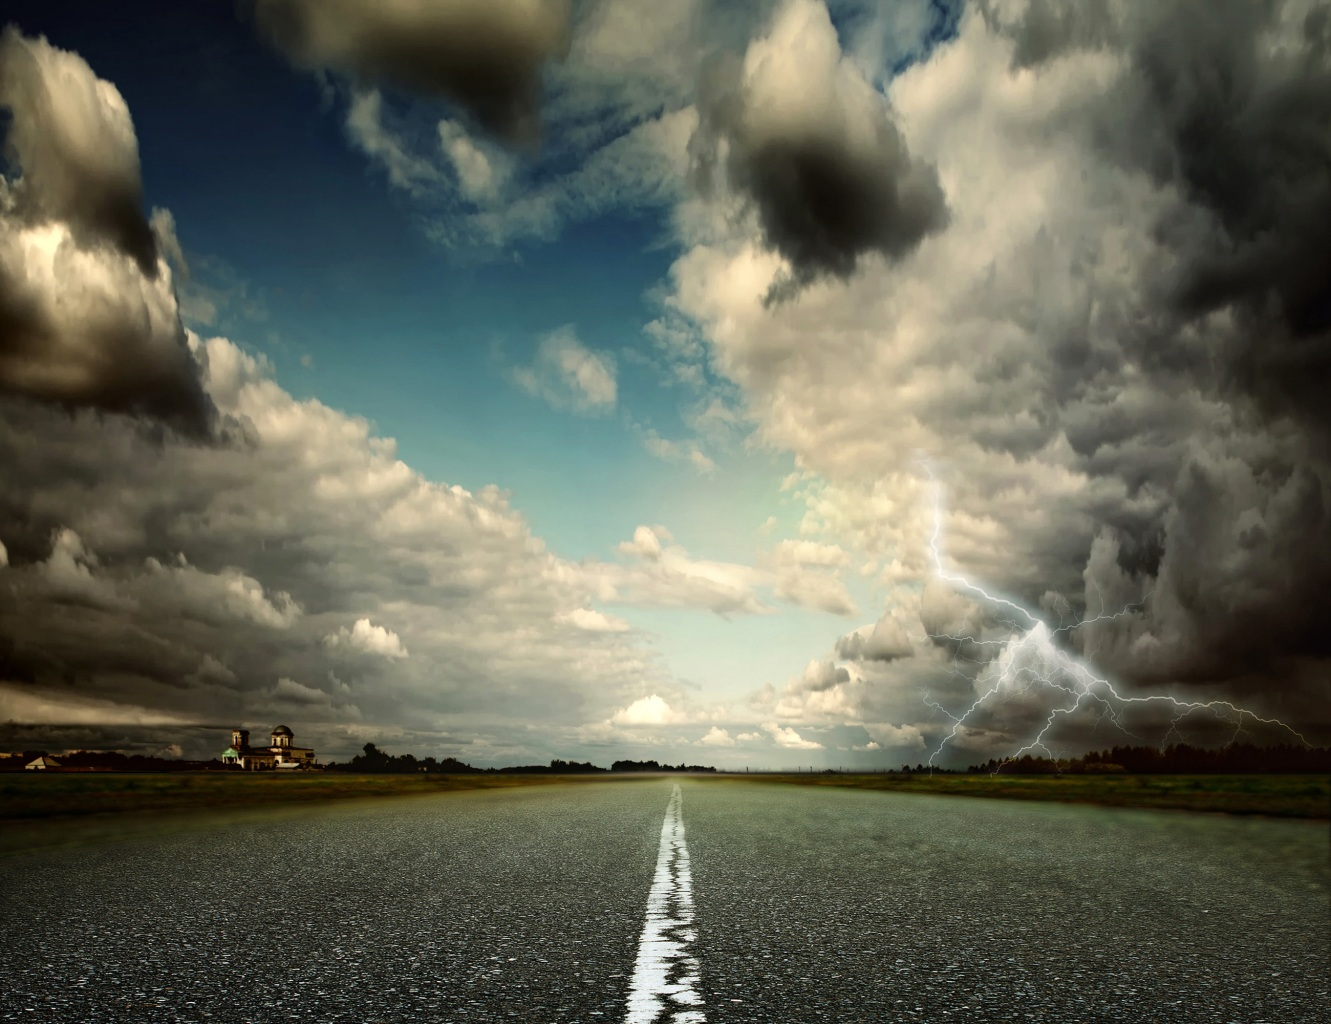 Scenery Roads Sky Grass Clouds Lightning Trees Thundercloud Nature